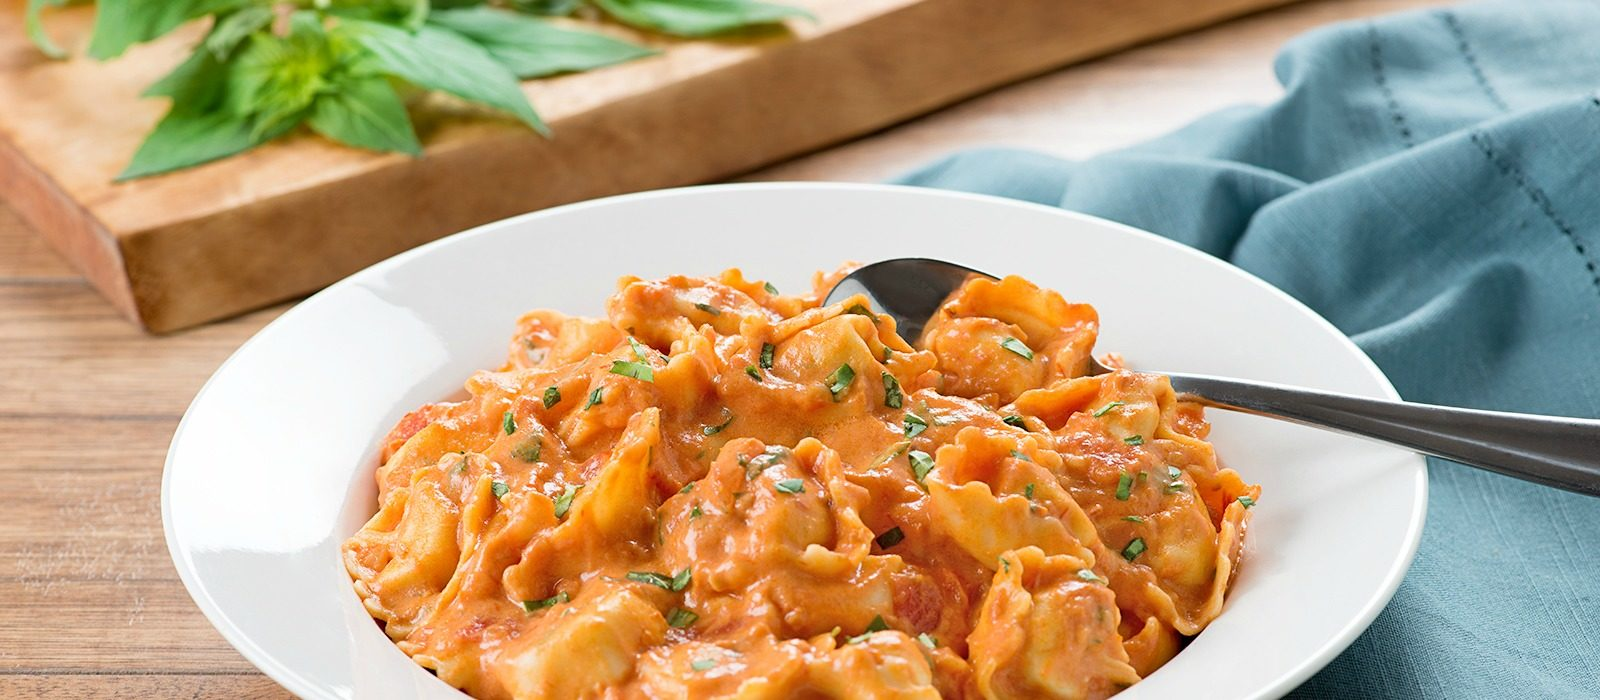 Cheese Tortellini with Roasted Red Peppers